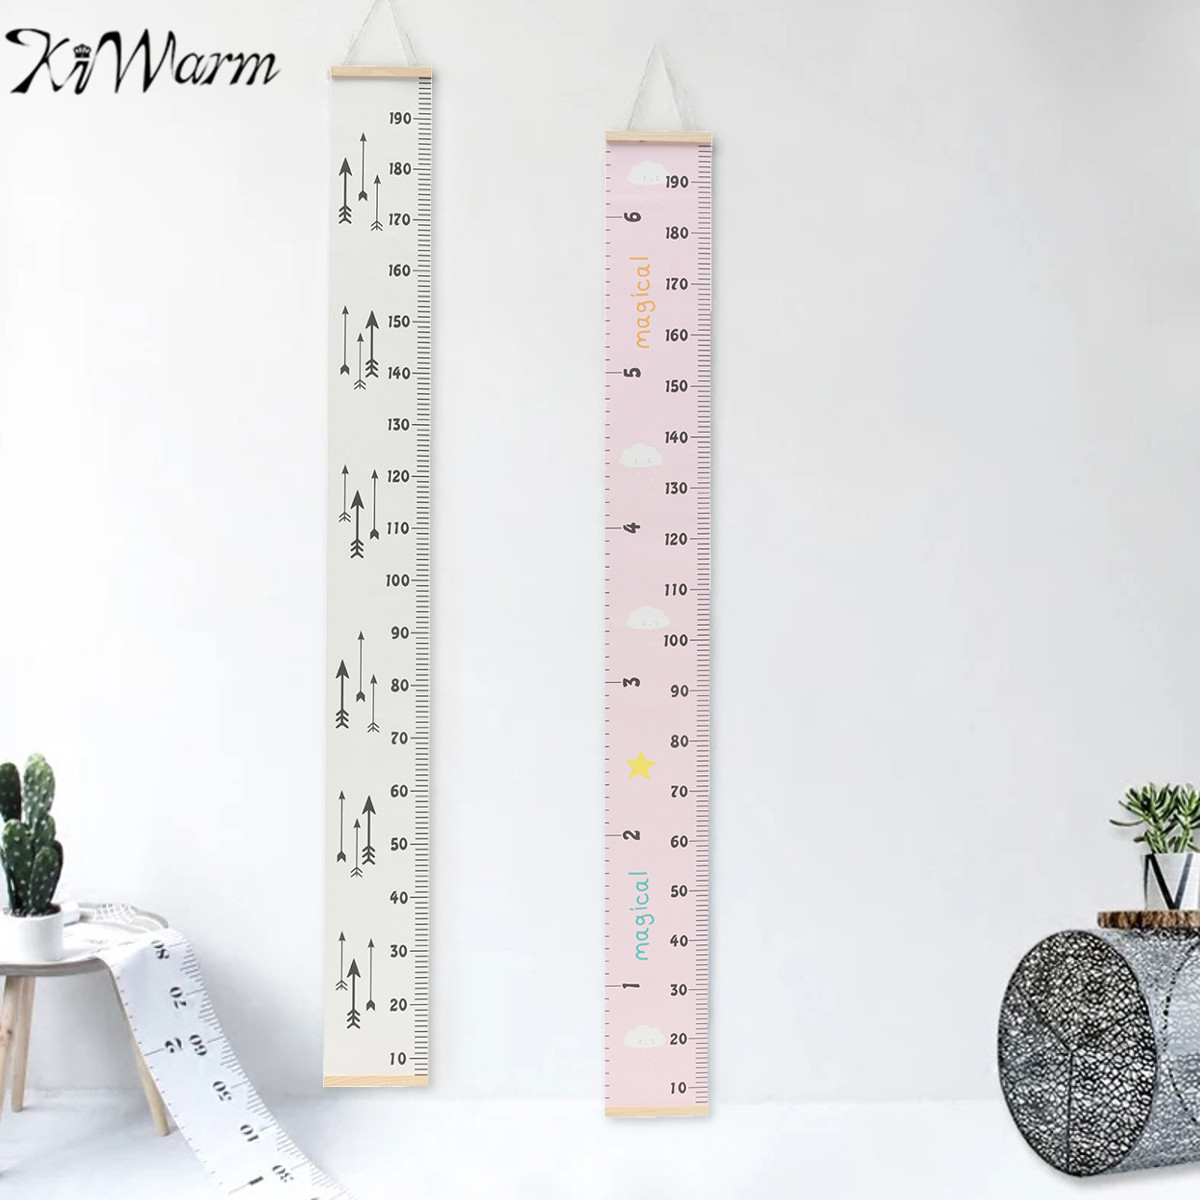 Kiwarm newest wooden wall hanging baby child kids growth chart height measure ruler sticker children also rulers room removable rh aliexpress